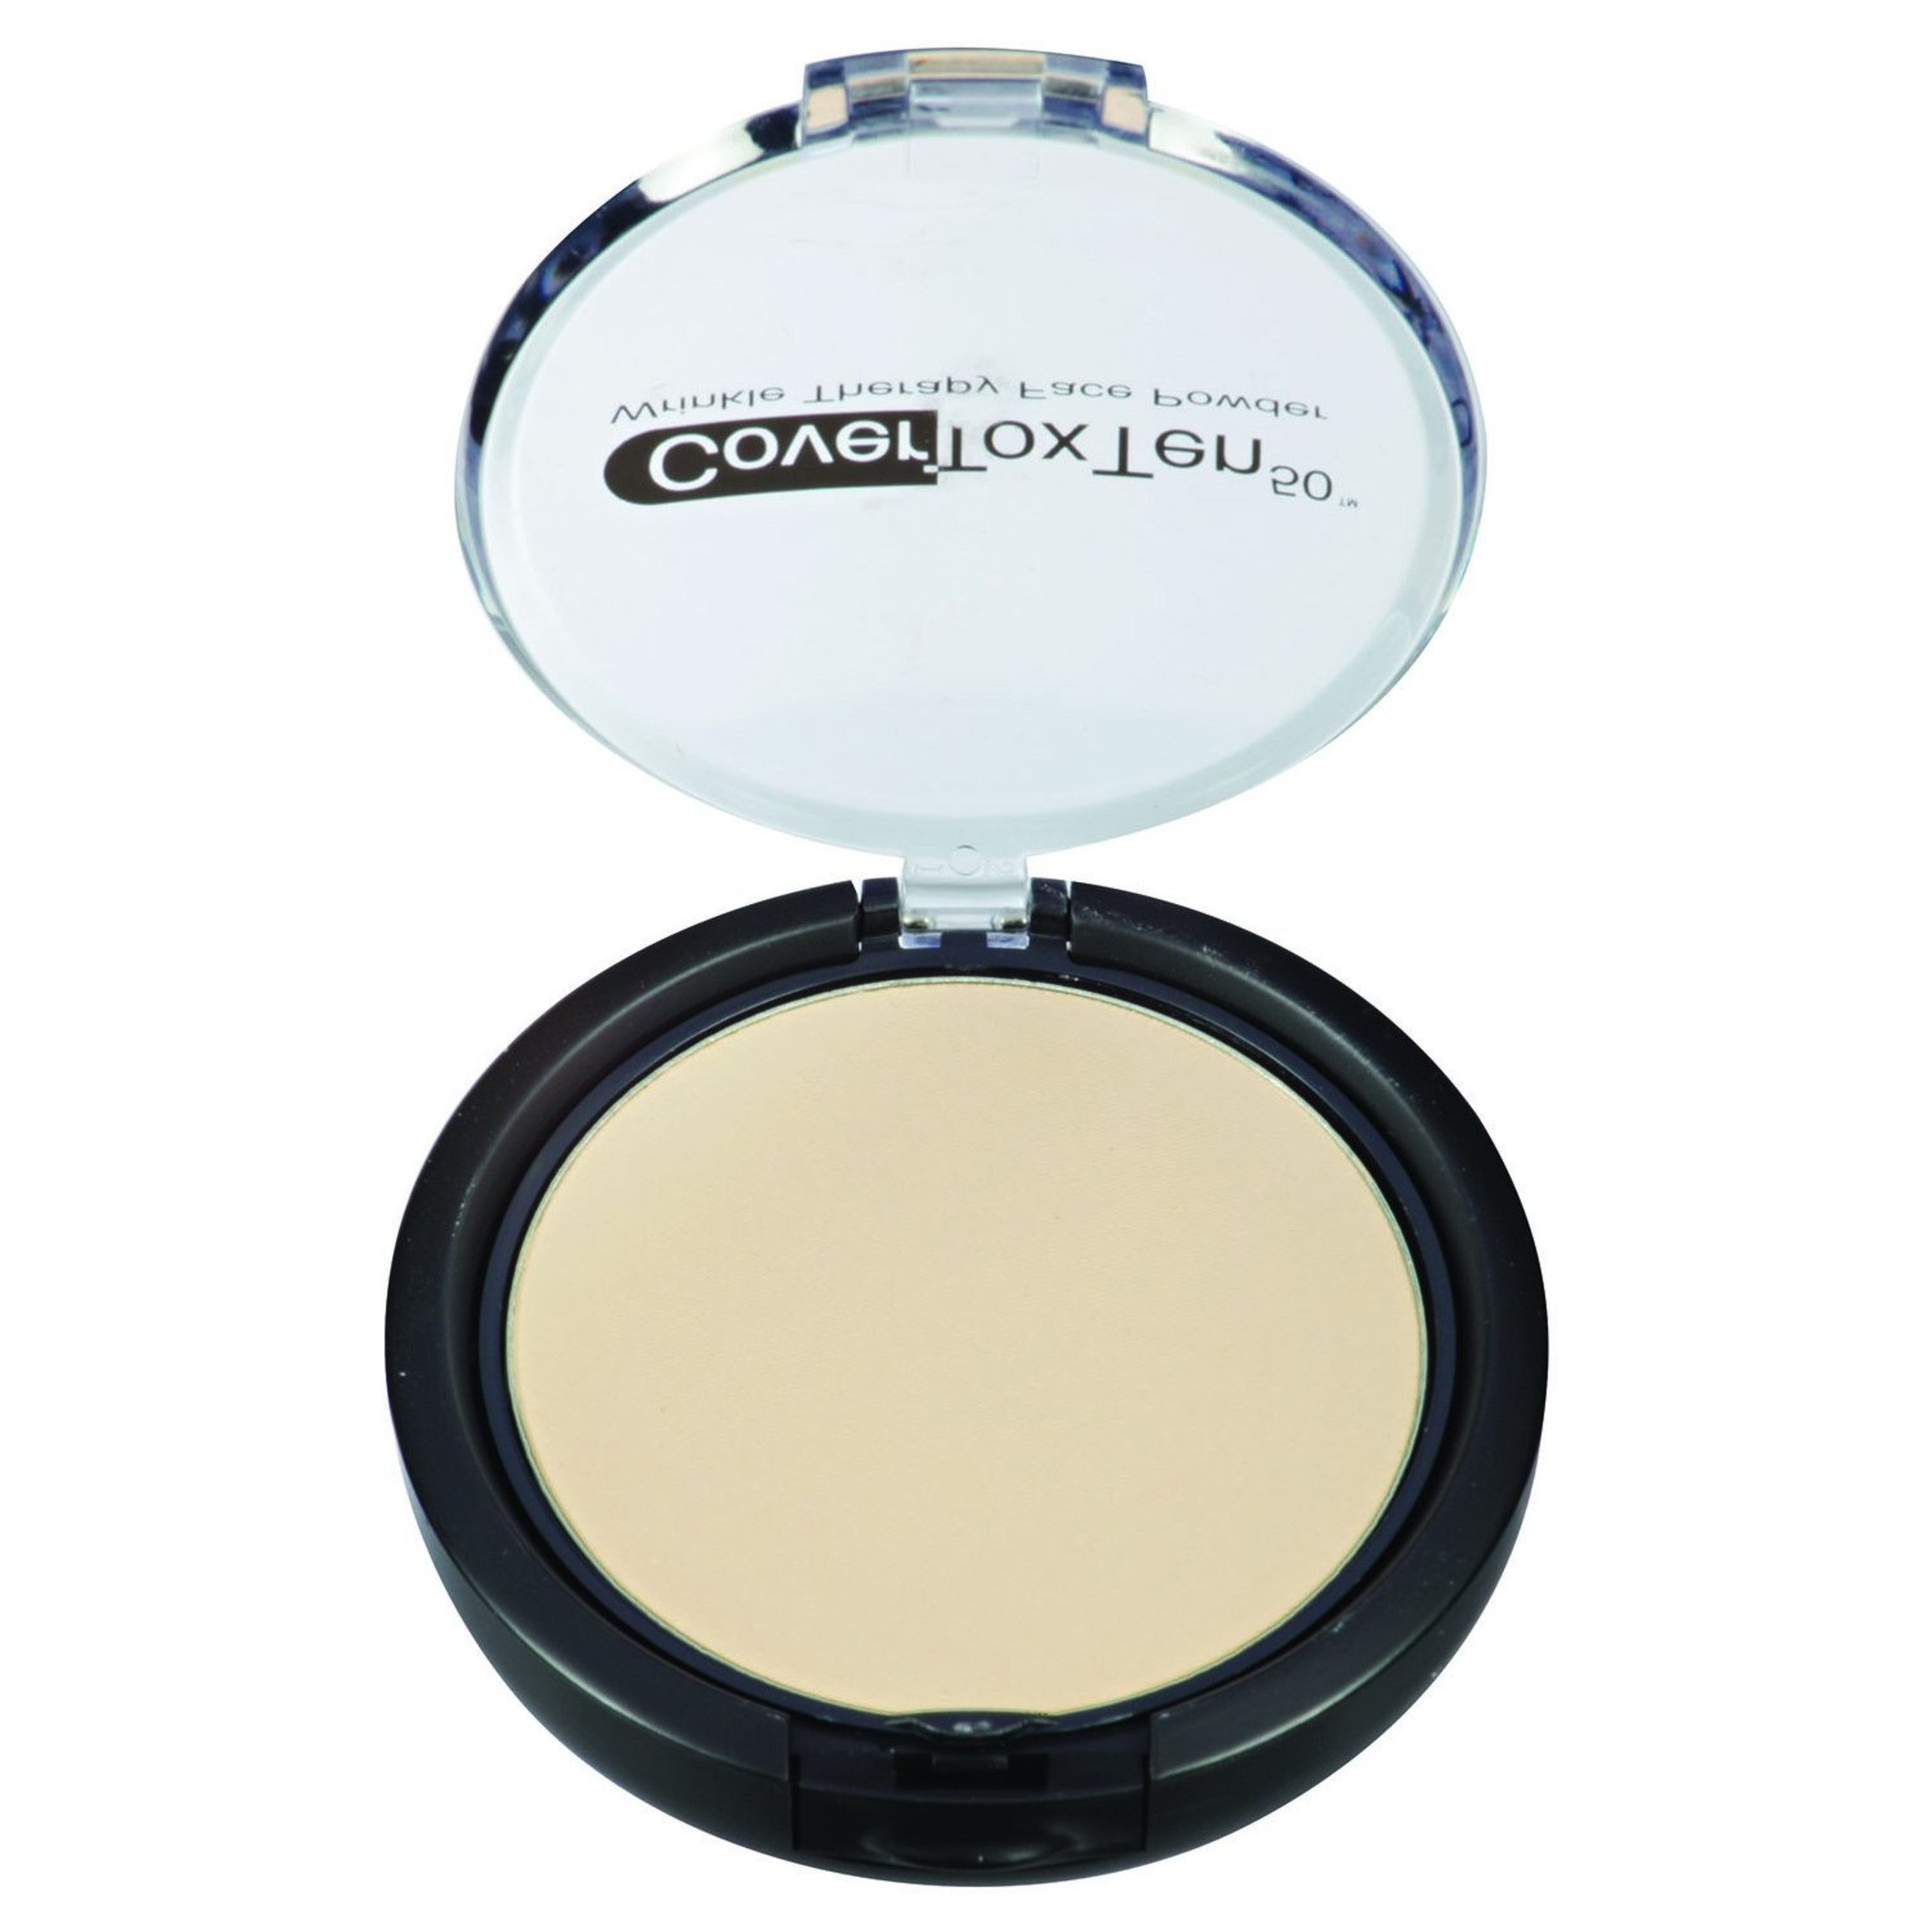 Physicians Formula Covertoxten™ Wrinkle Therapy Face Powder, Translucent Light